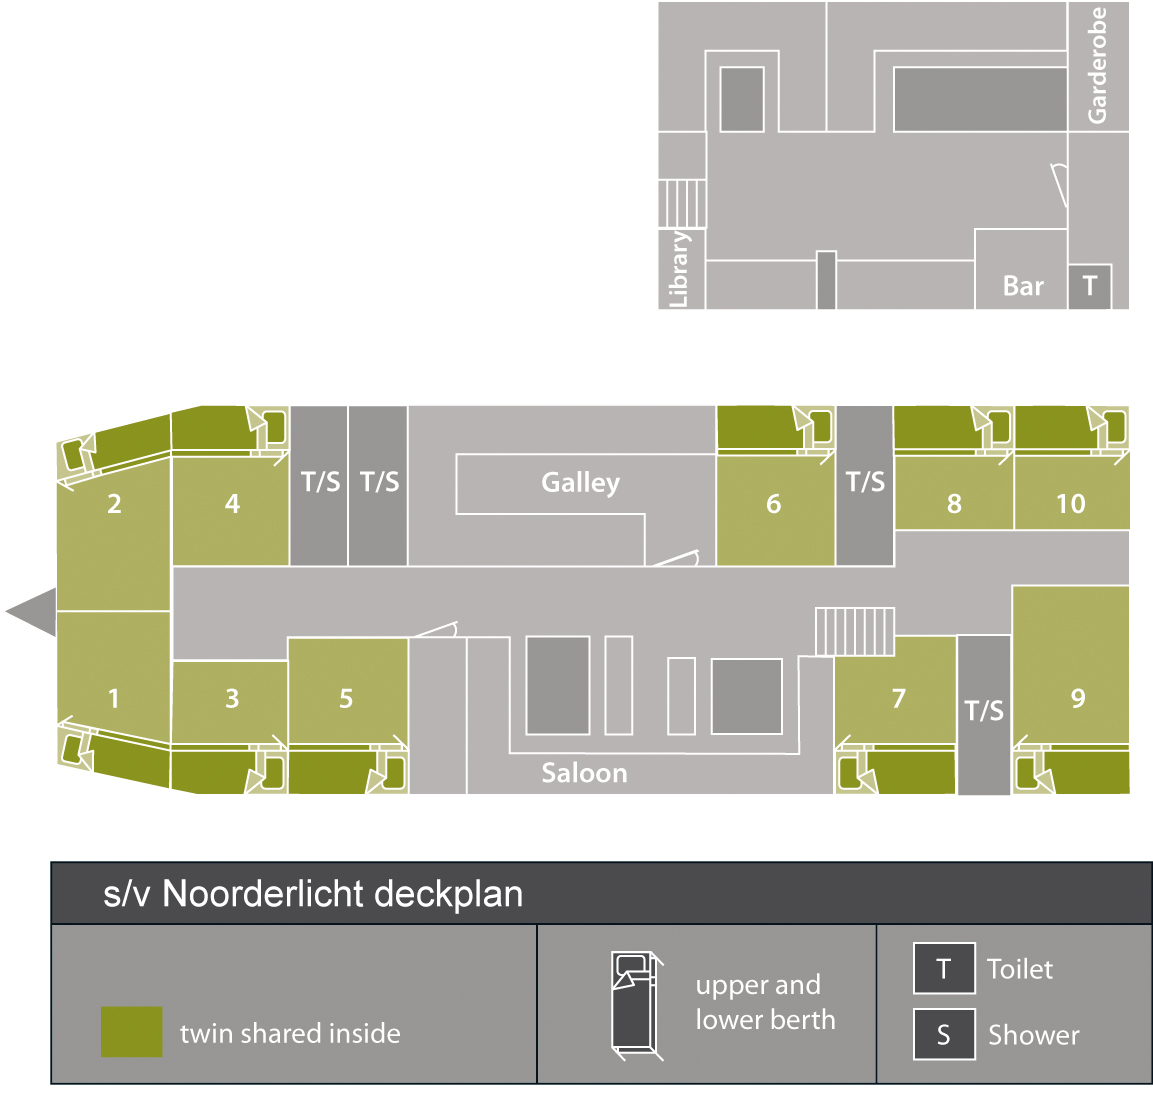 Cabin layout for Noorderlicht